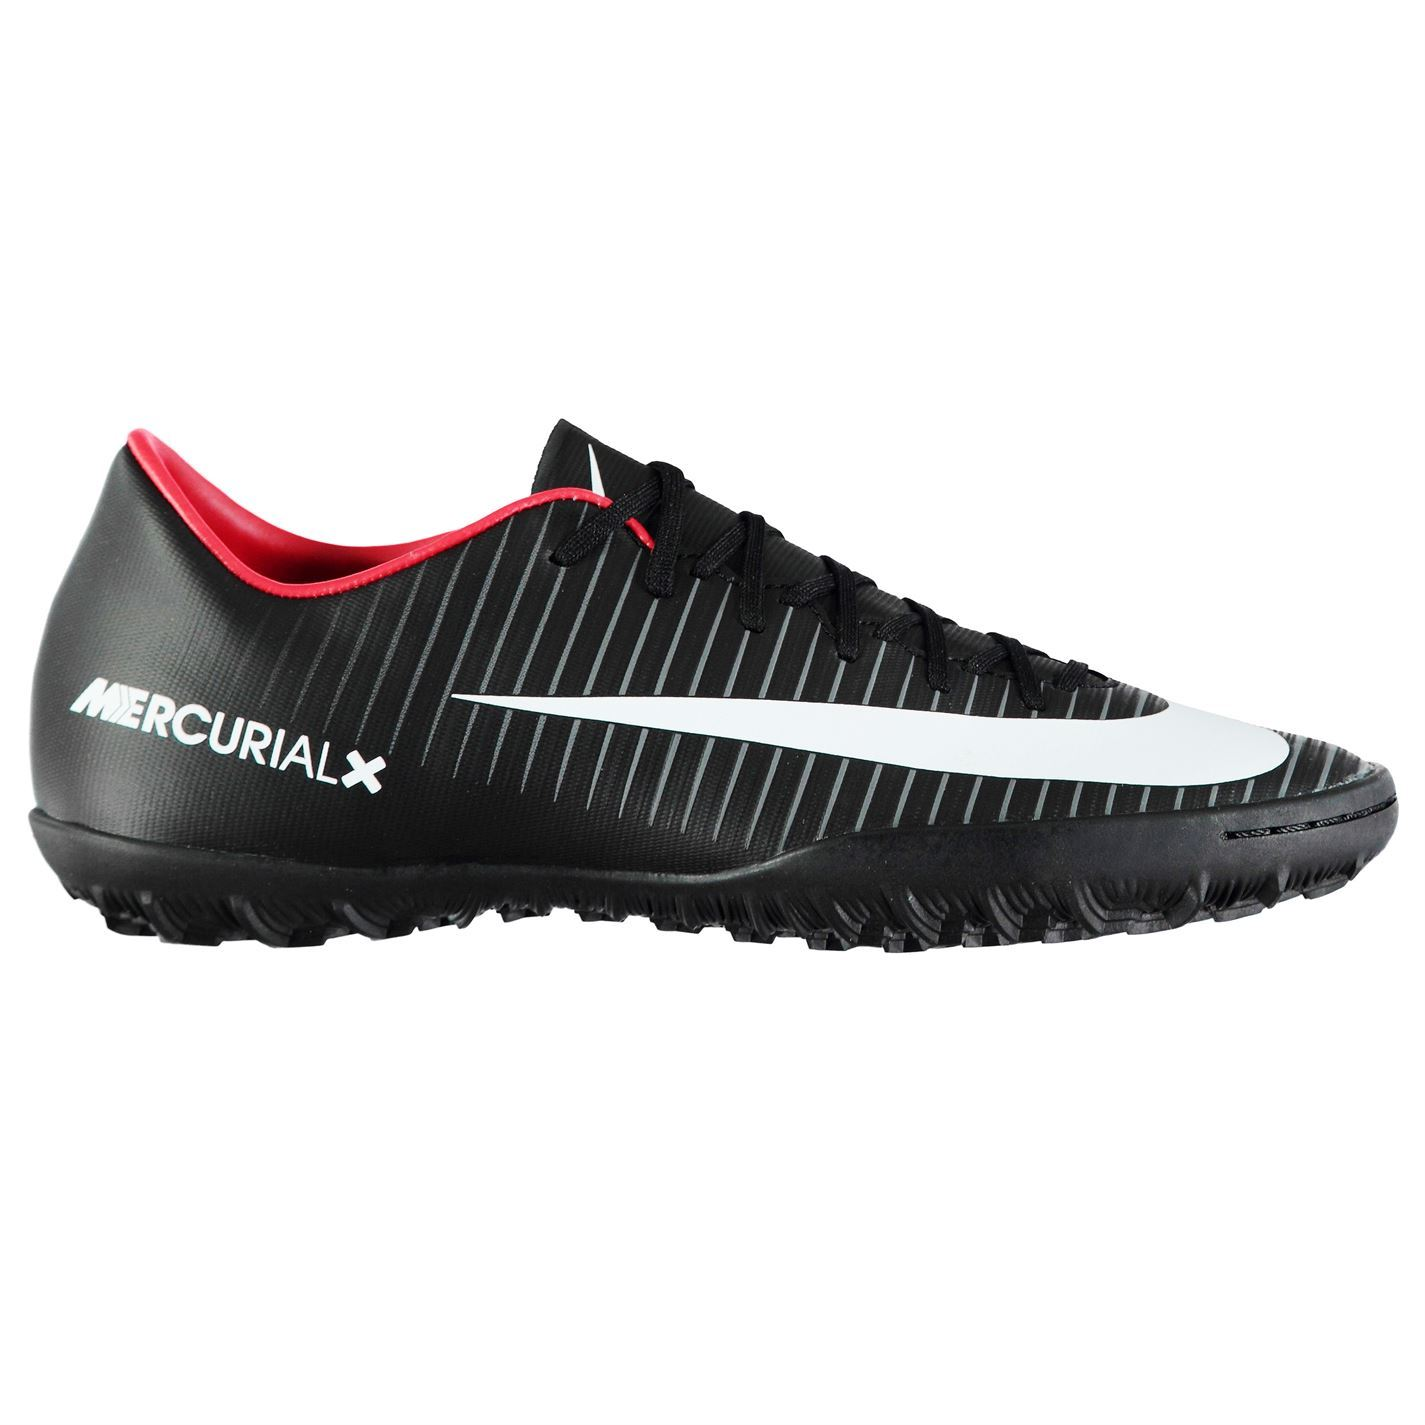 8e8e7cf89f6 ... Nike Mercurial Victory Astro Turf Football Trainers Mens Black Soccer  Shoes ...